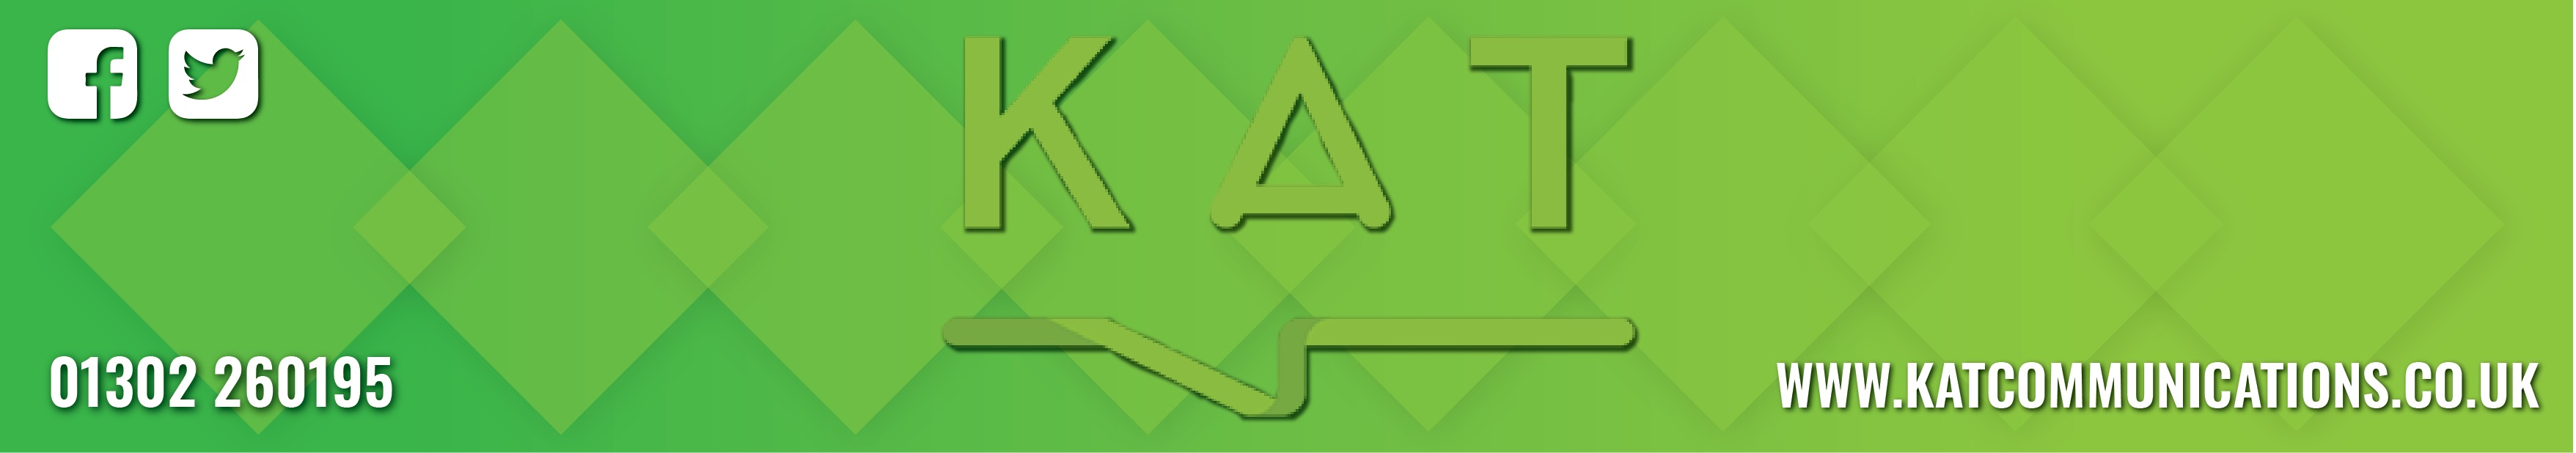 KAT Communications